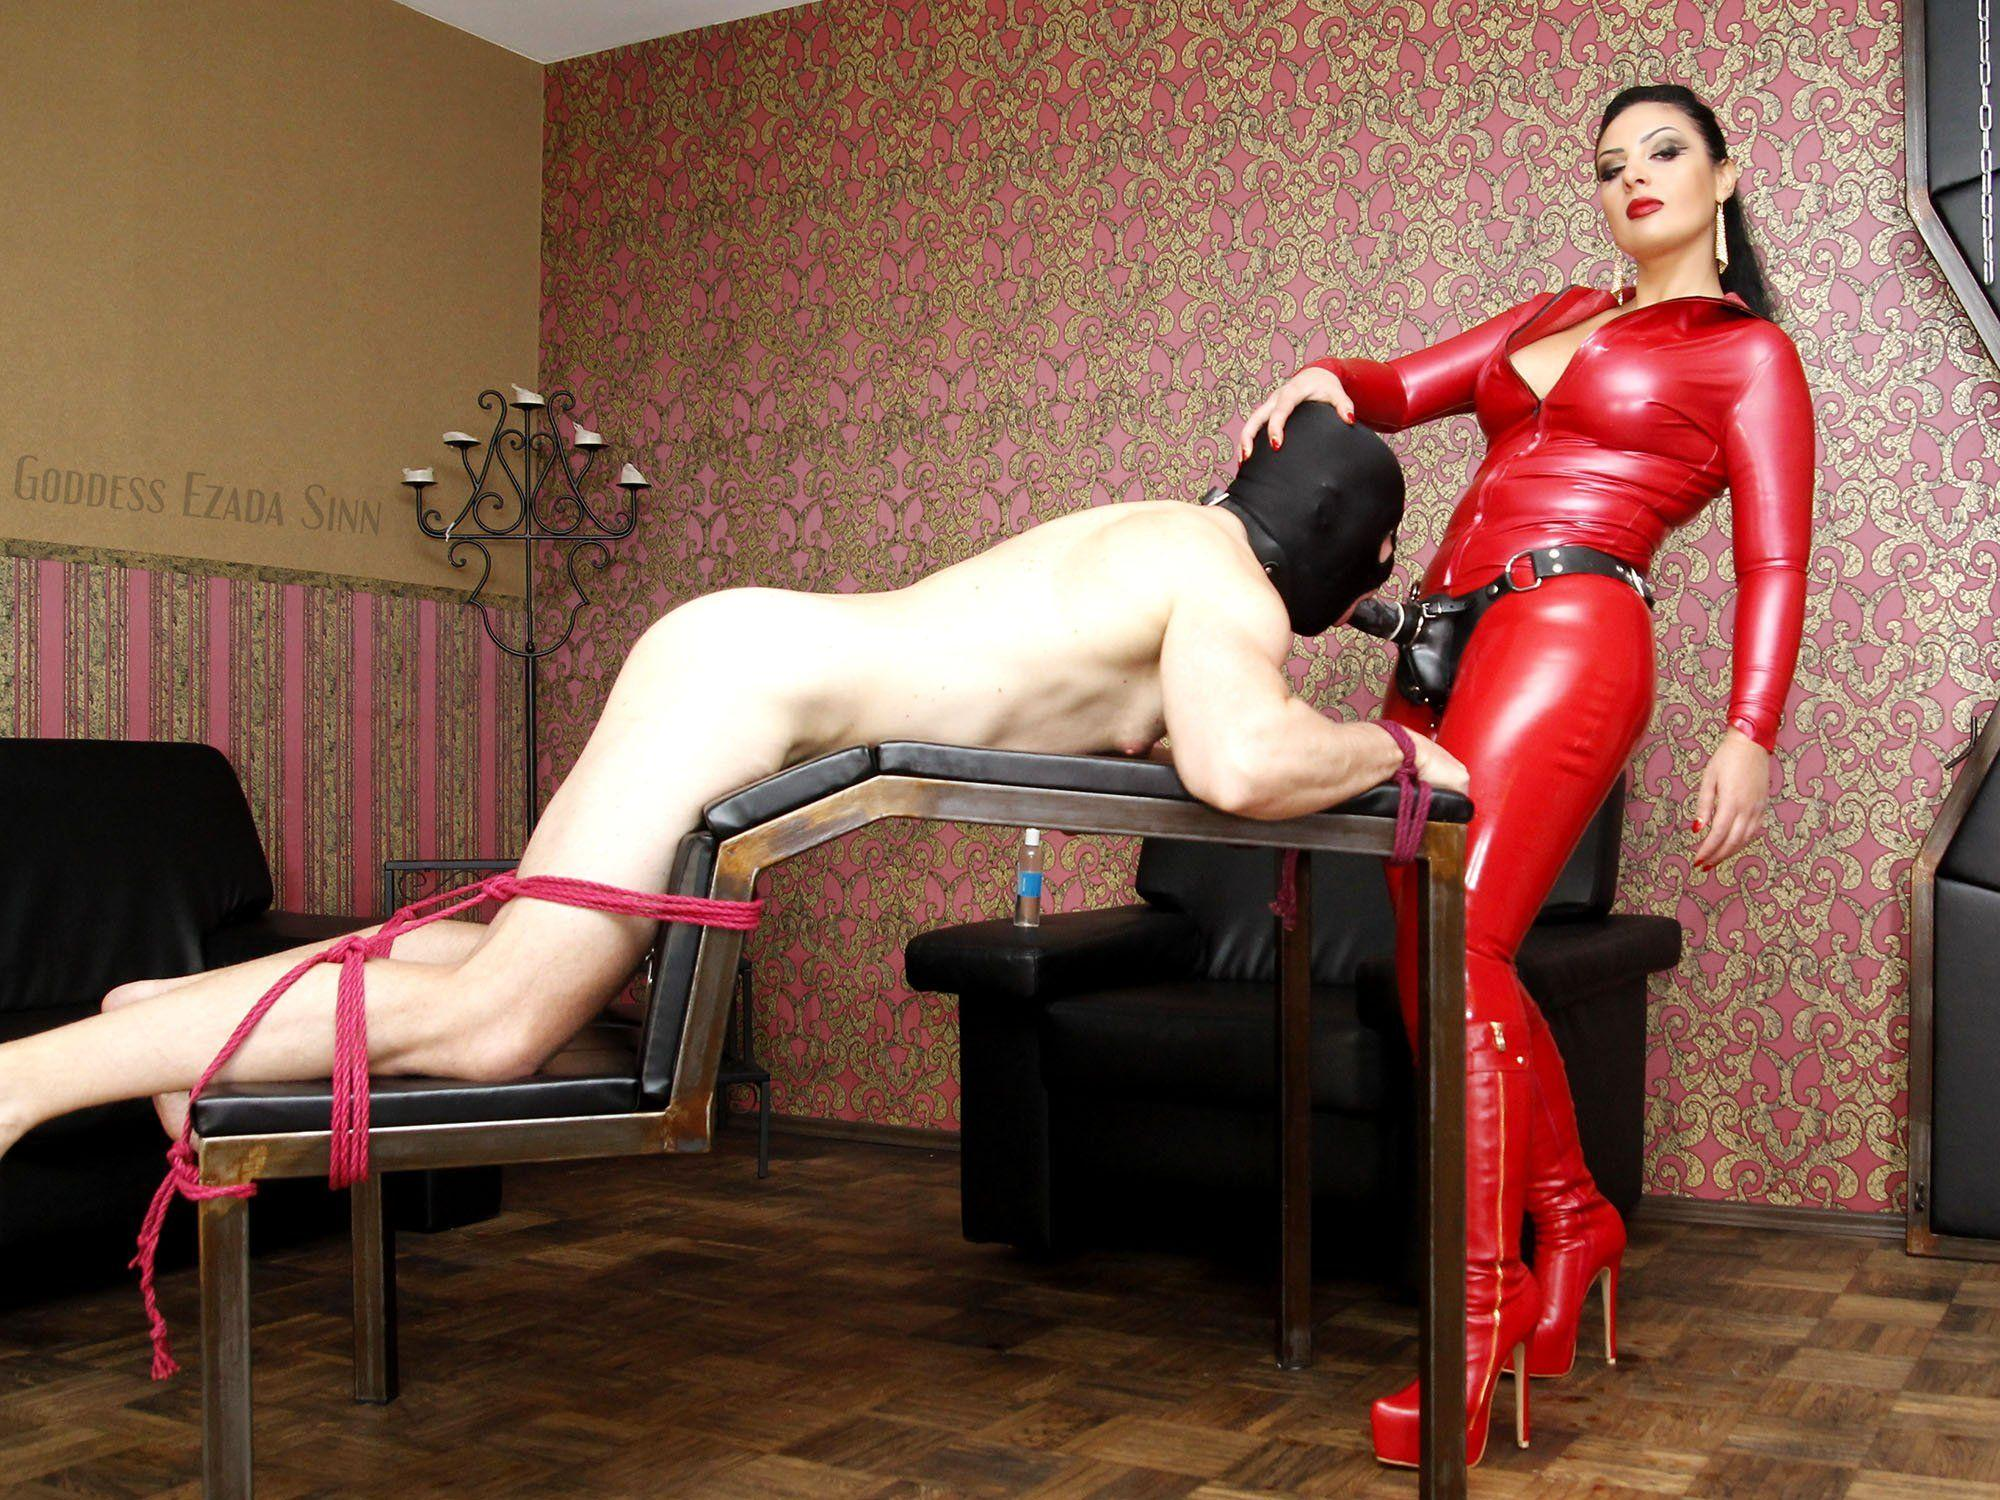 Library female domination bdsm